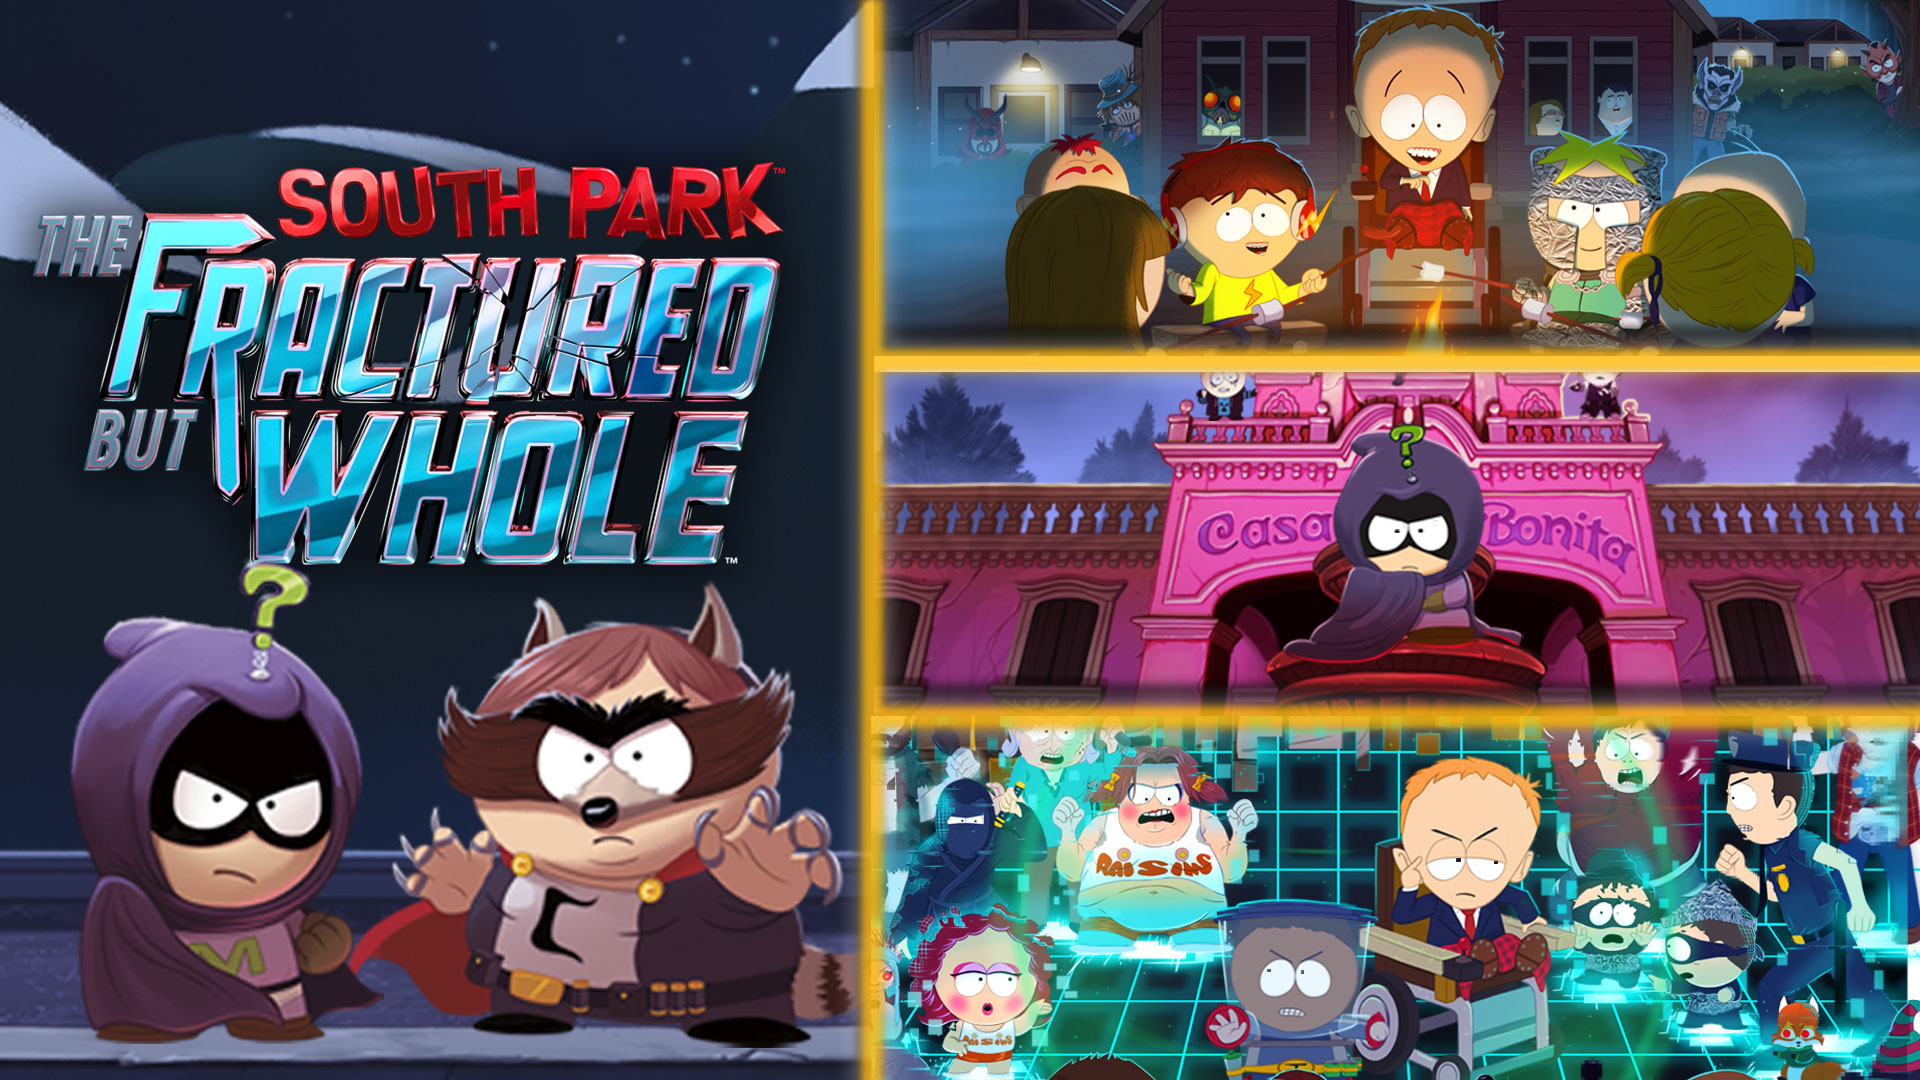 South Park: The Fractured But Whole On Sale